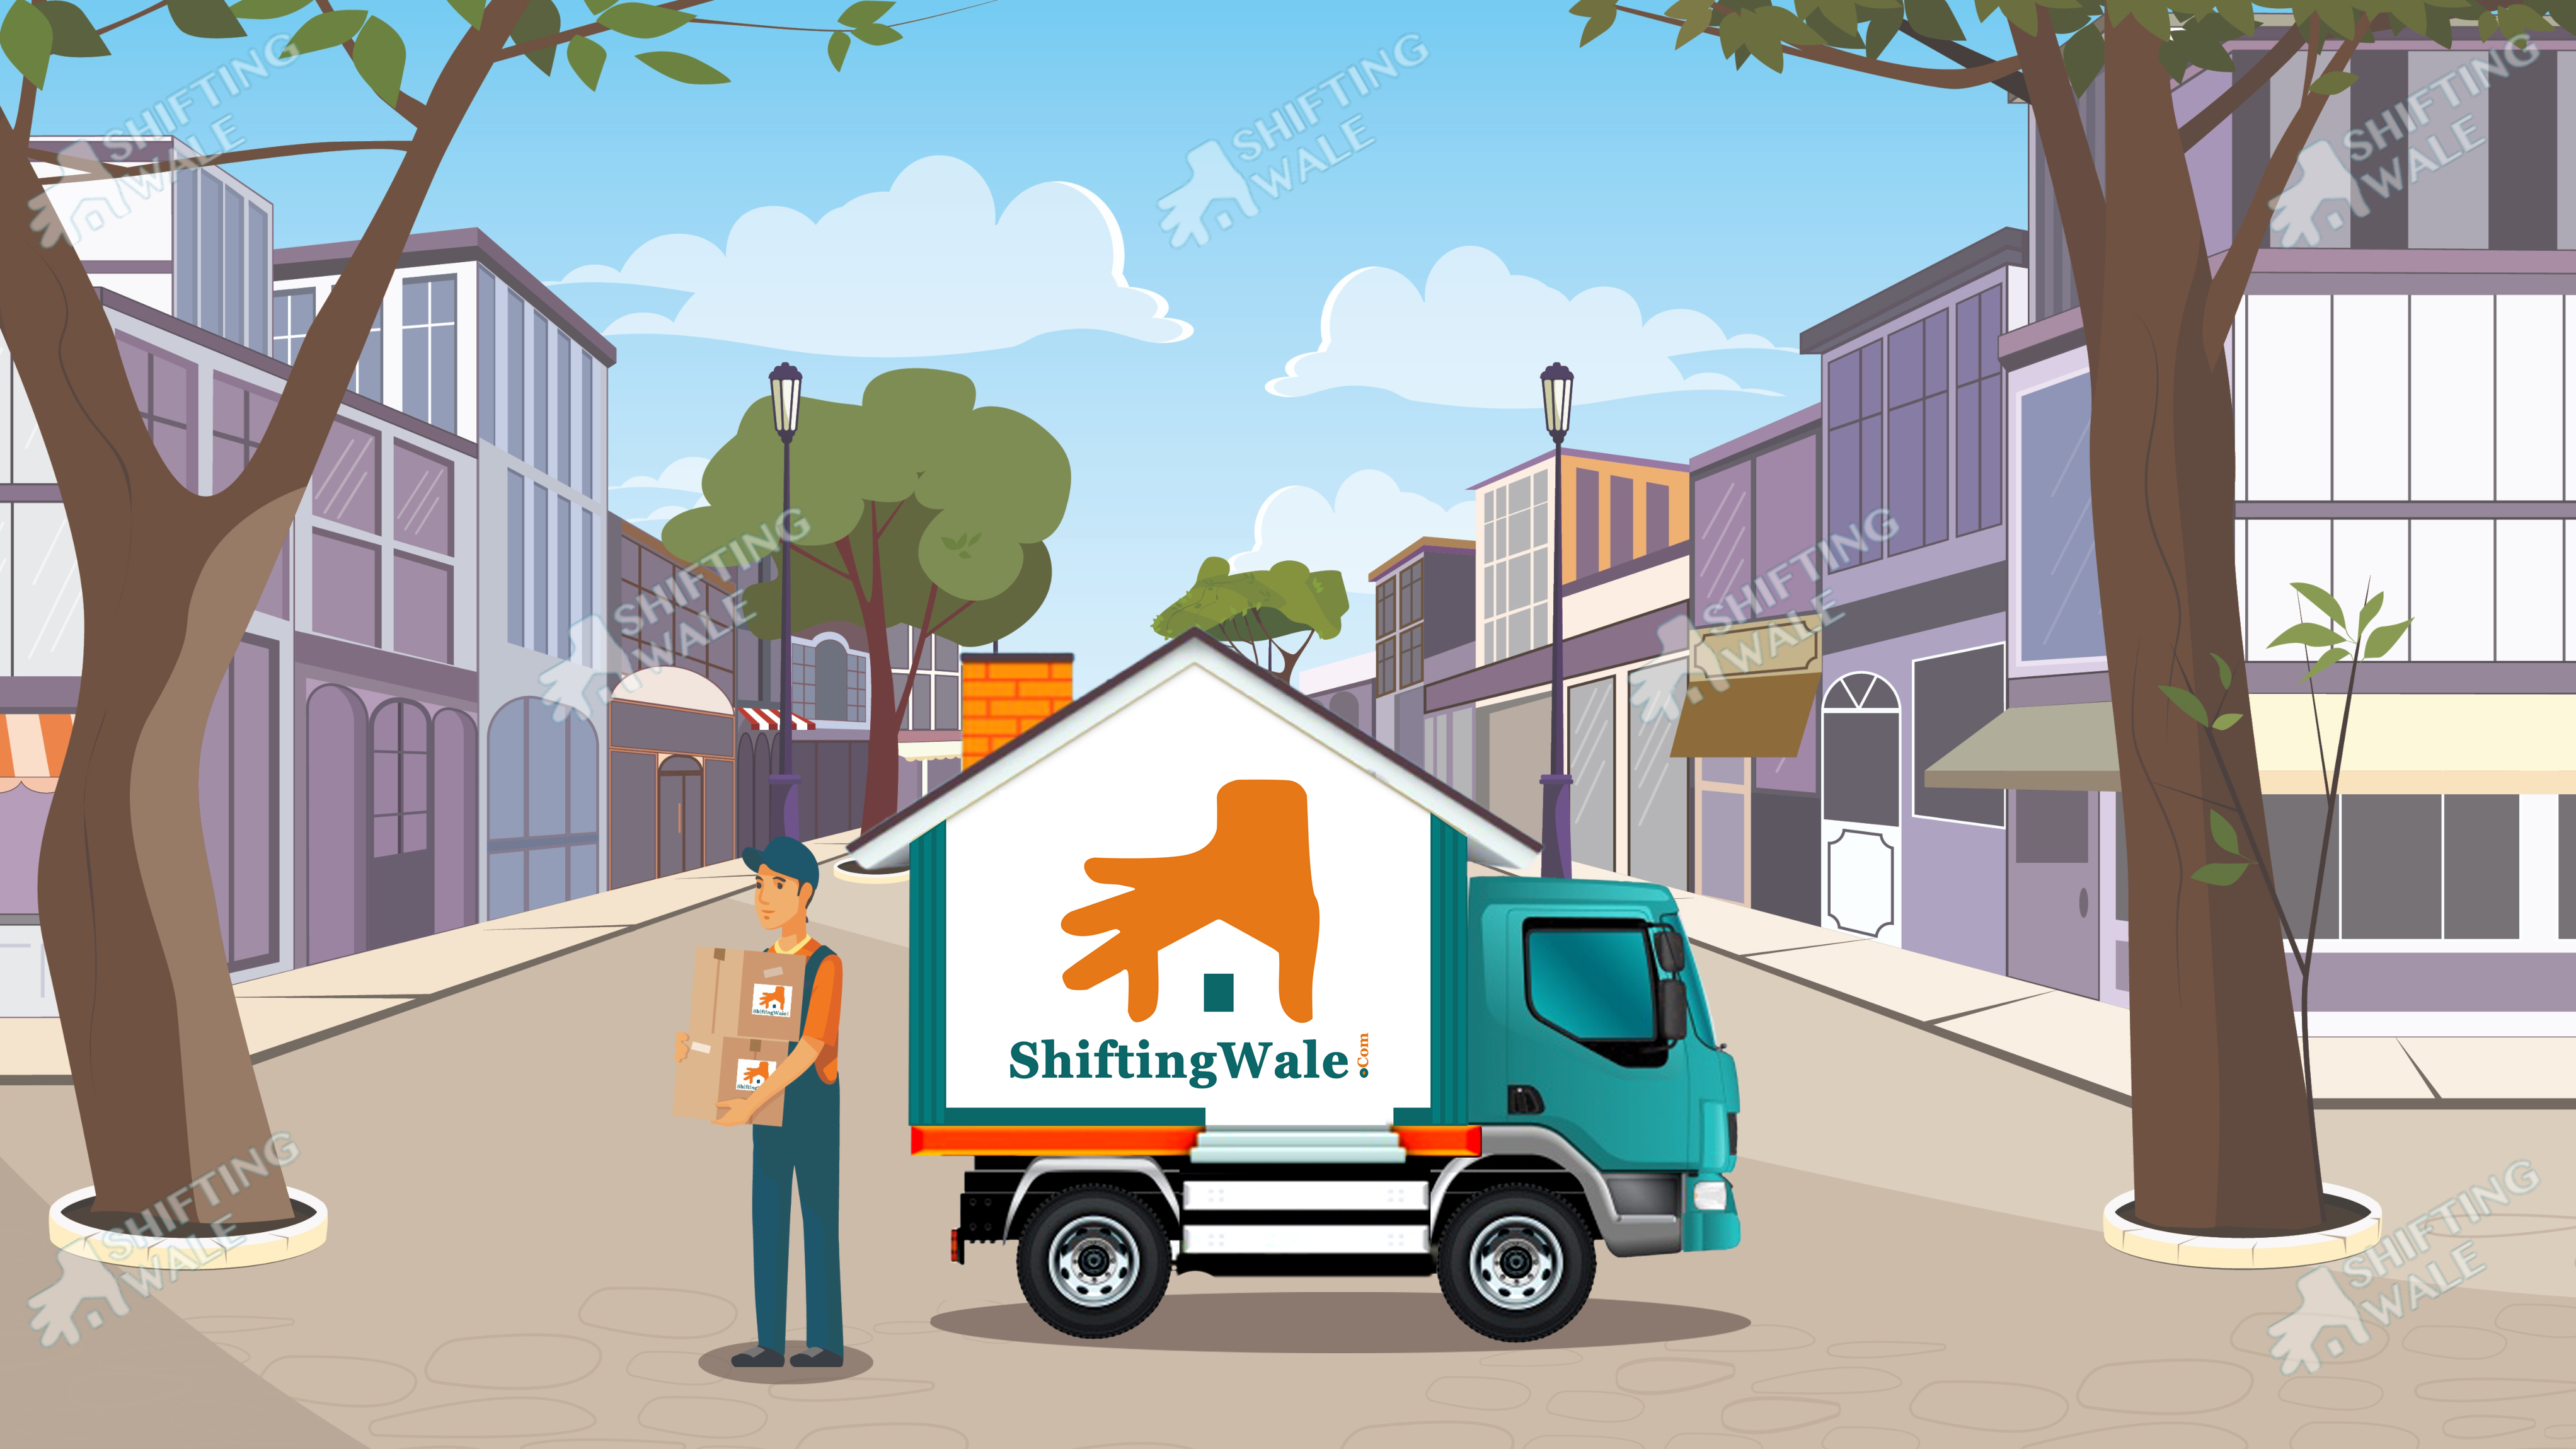 Need Packers and Movers for Household Goods Car From Delhi Noida Gurgaon to Patna Ranchi Jamshedpur Bhubaneswar